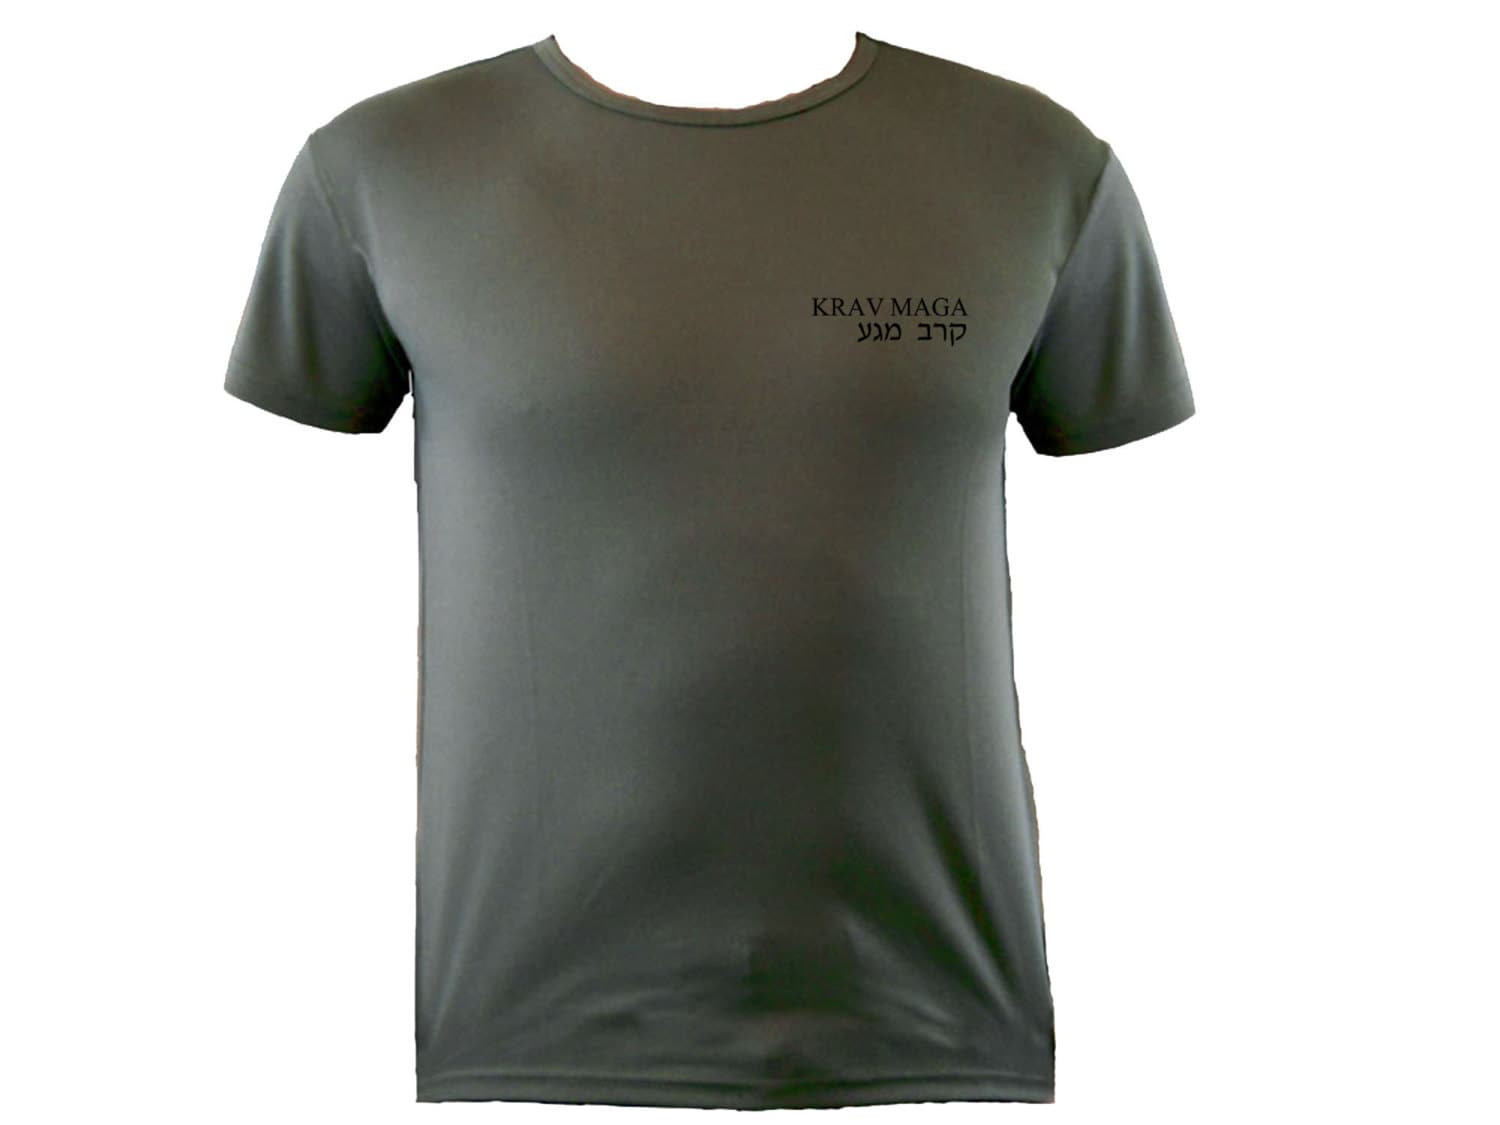 Krav Maga Englishhebrew Moisture Wicking Polyester Od Green Color T-shirt S-xl Unisex Tshirt